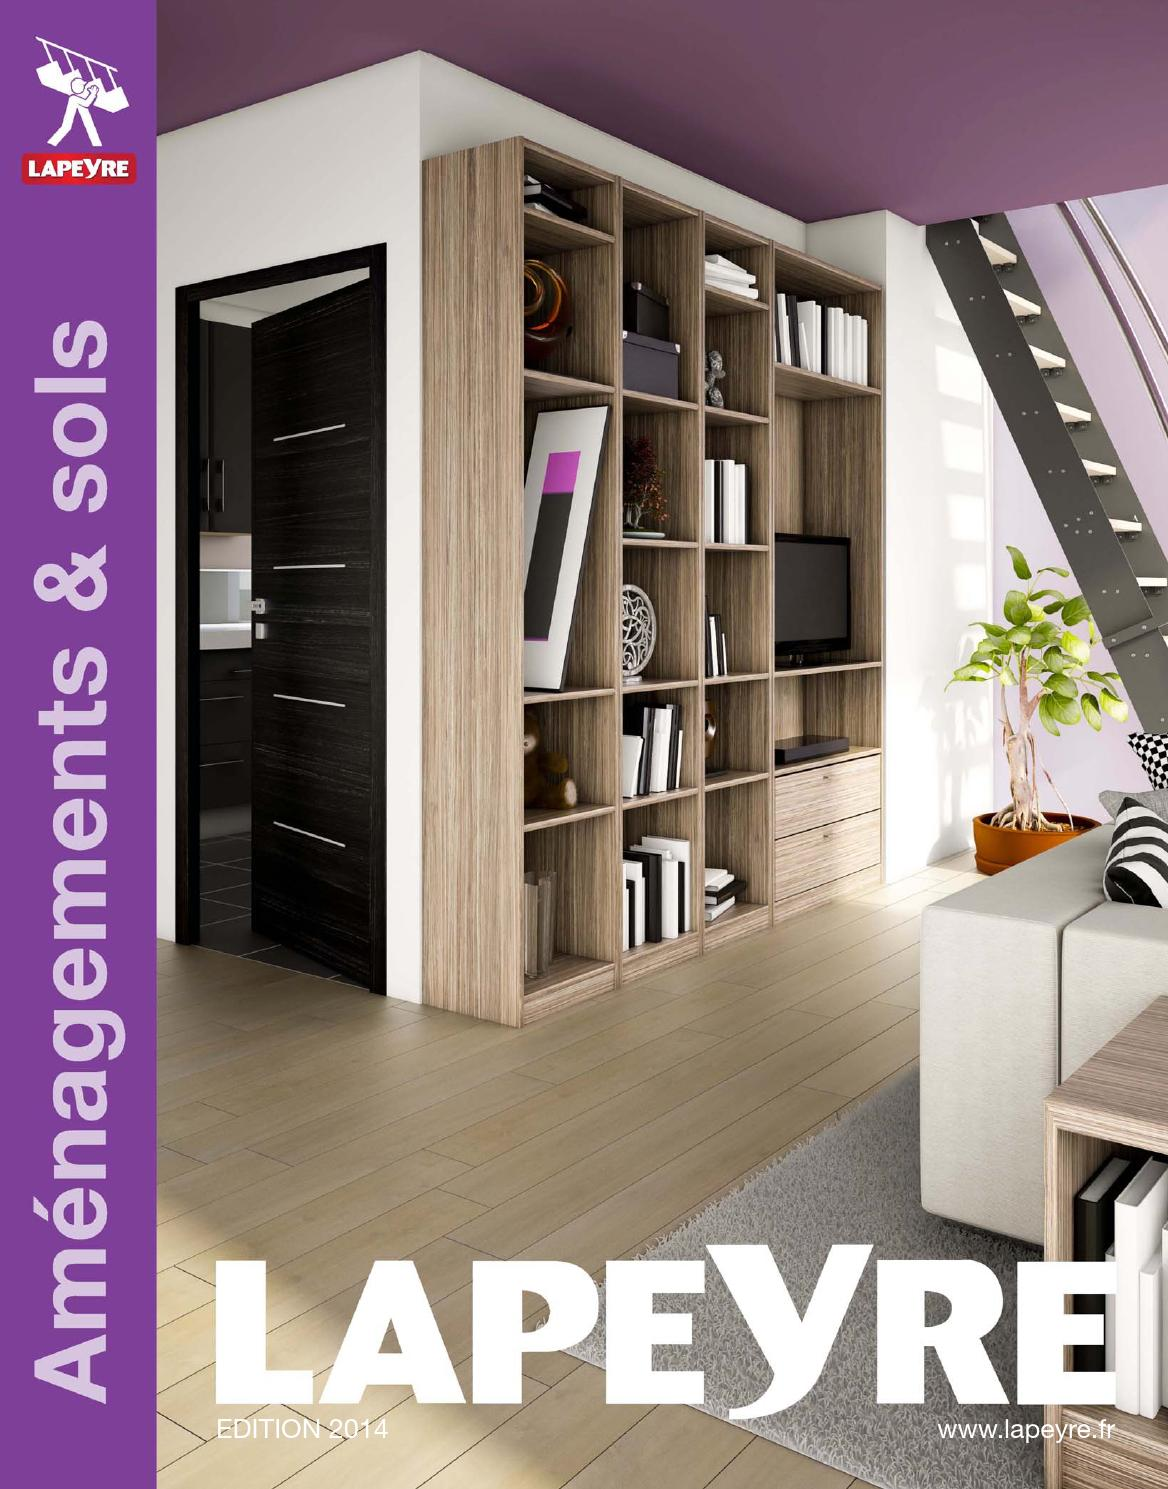 Catalogue lapeyre am nagements sols 2014 by joe monroe issuu - Lapeyre porte interieure sur mesure ...